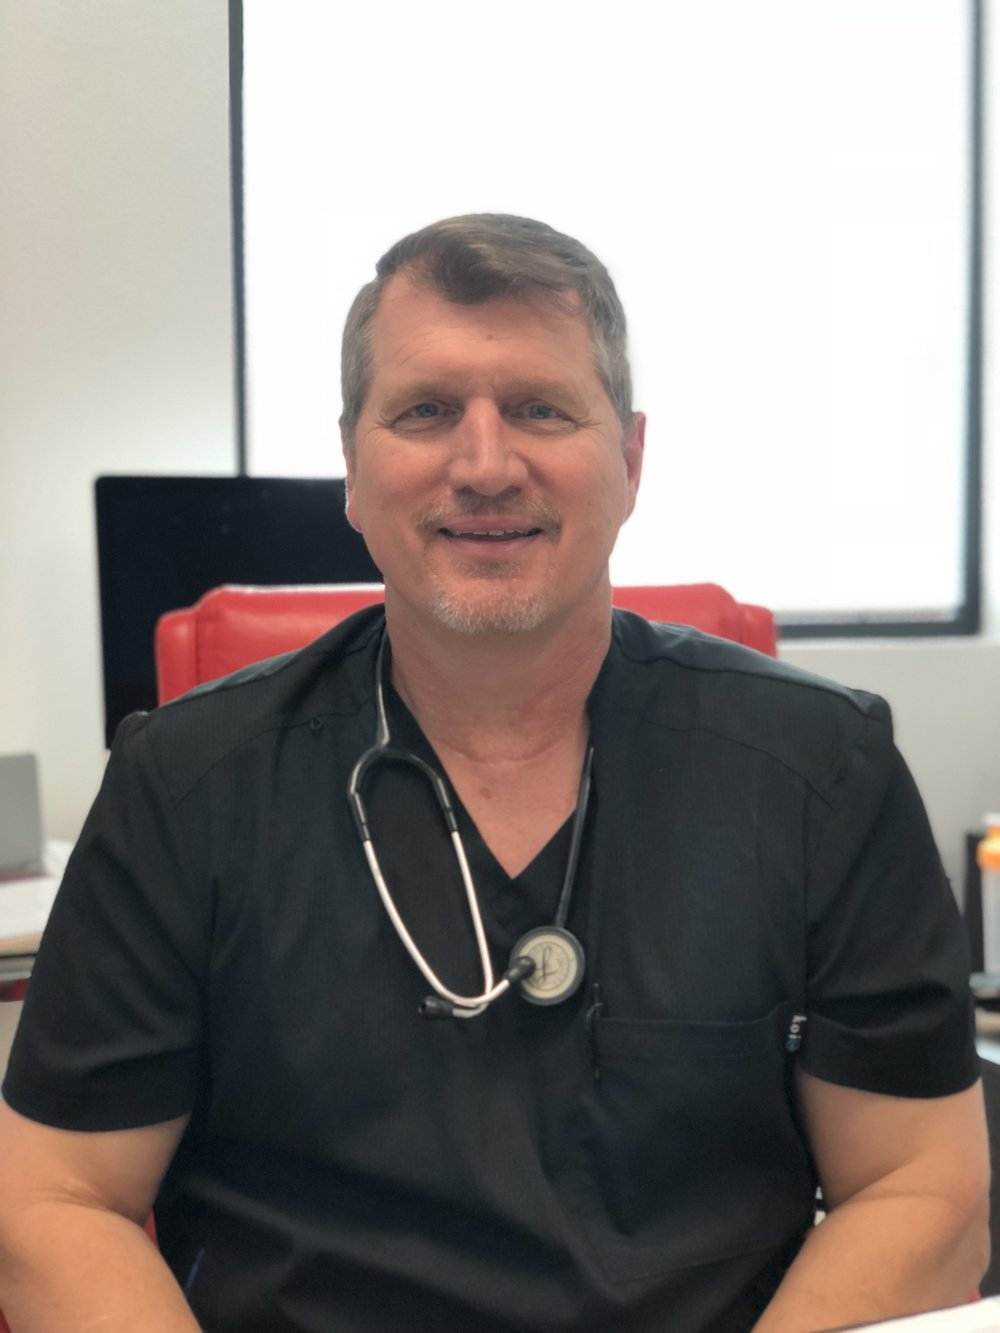 Dr. Steven Locnikar D.O. - Medical Director